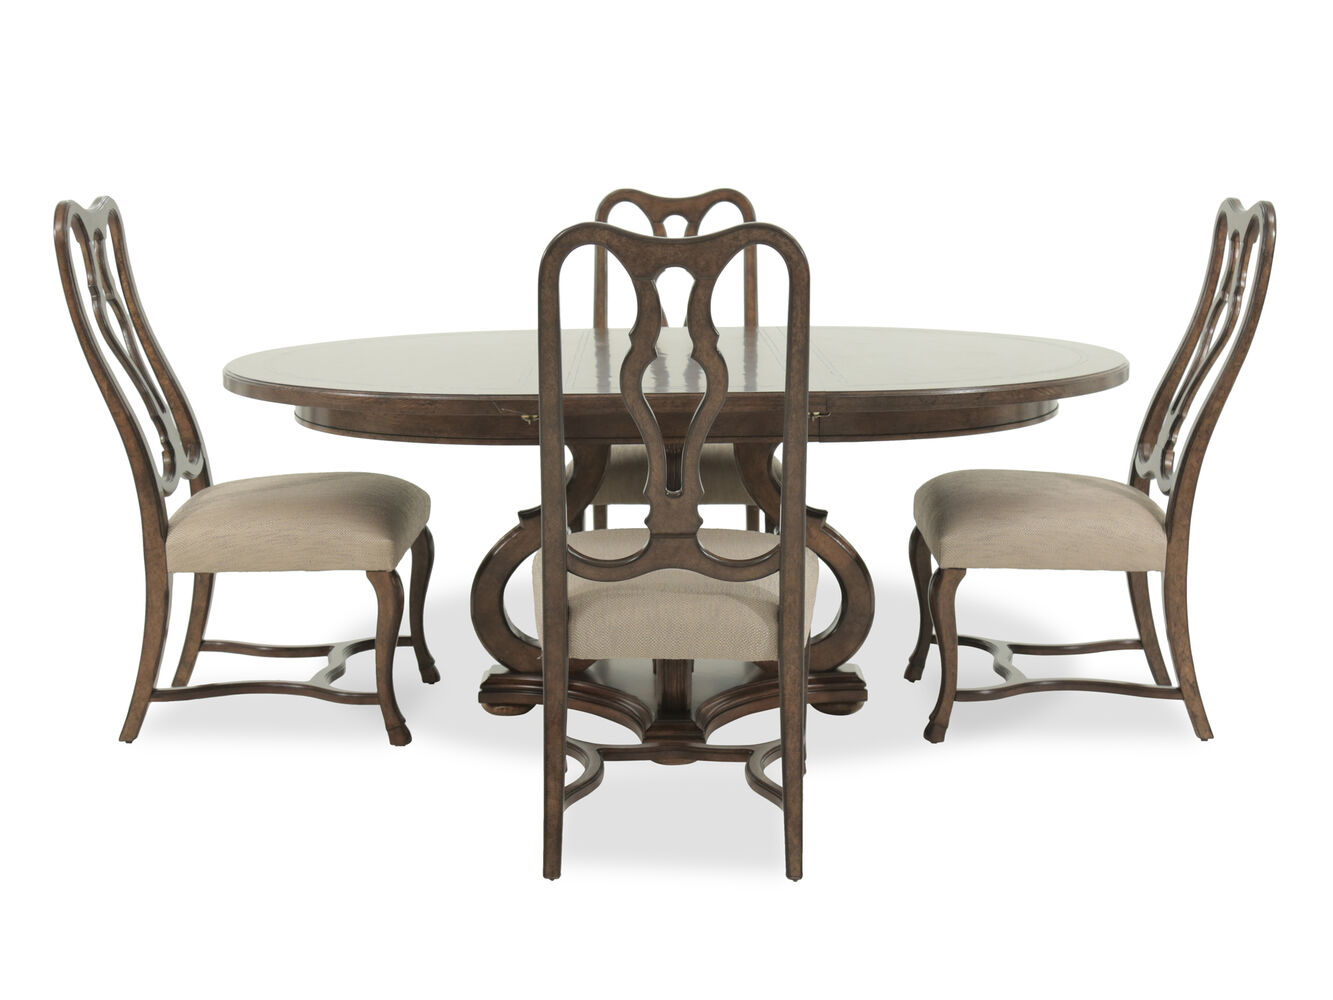 Five piece traditional round 78 39 39 dining set in dark oak for Traditional round dining room sets